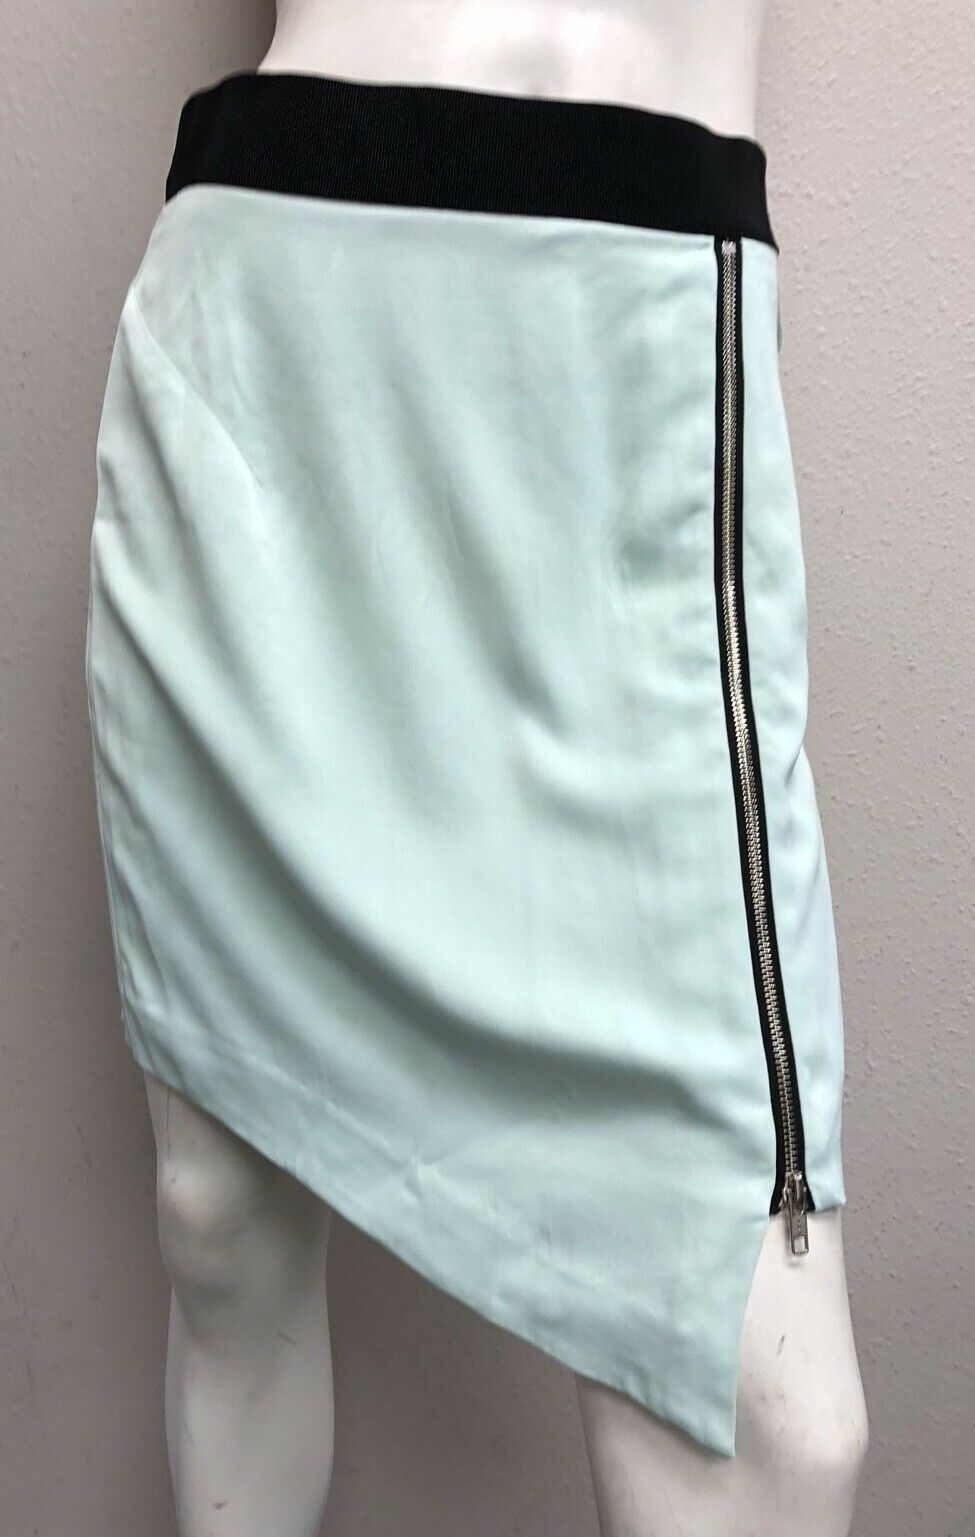 Milly Original New York Zipskirt Seagull Seagl Teal Aqua bluee size 6